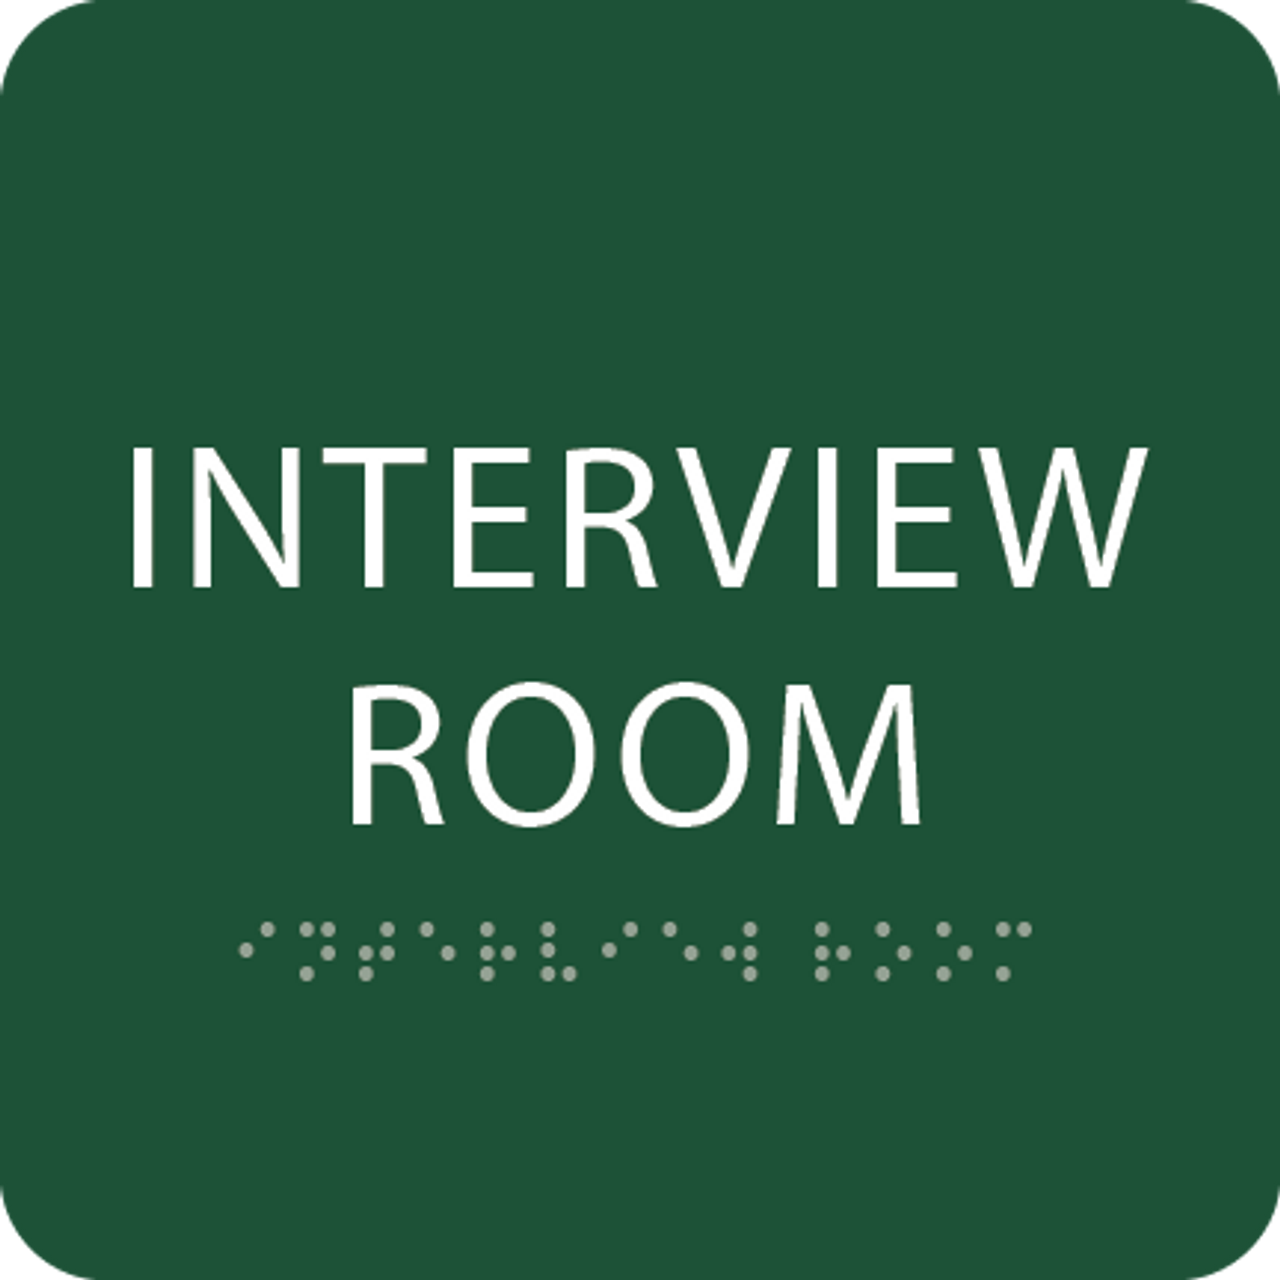 Green Interview Room ADA Sign